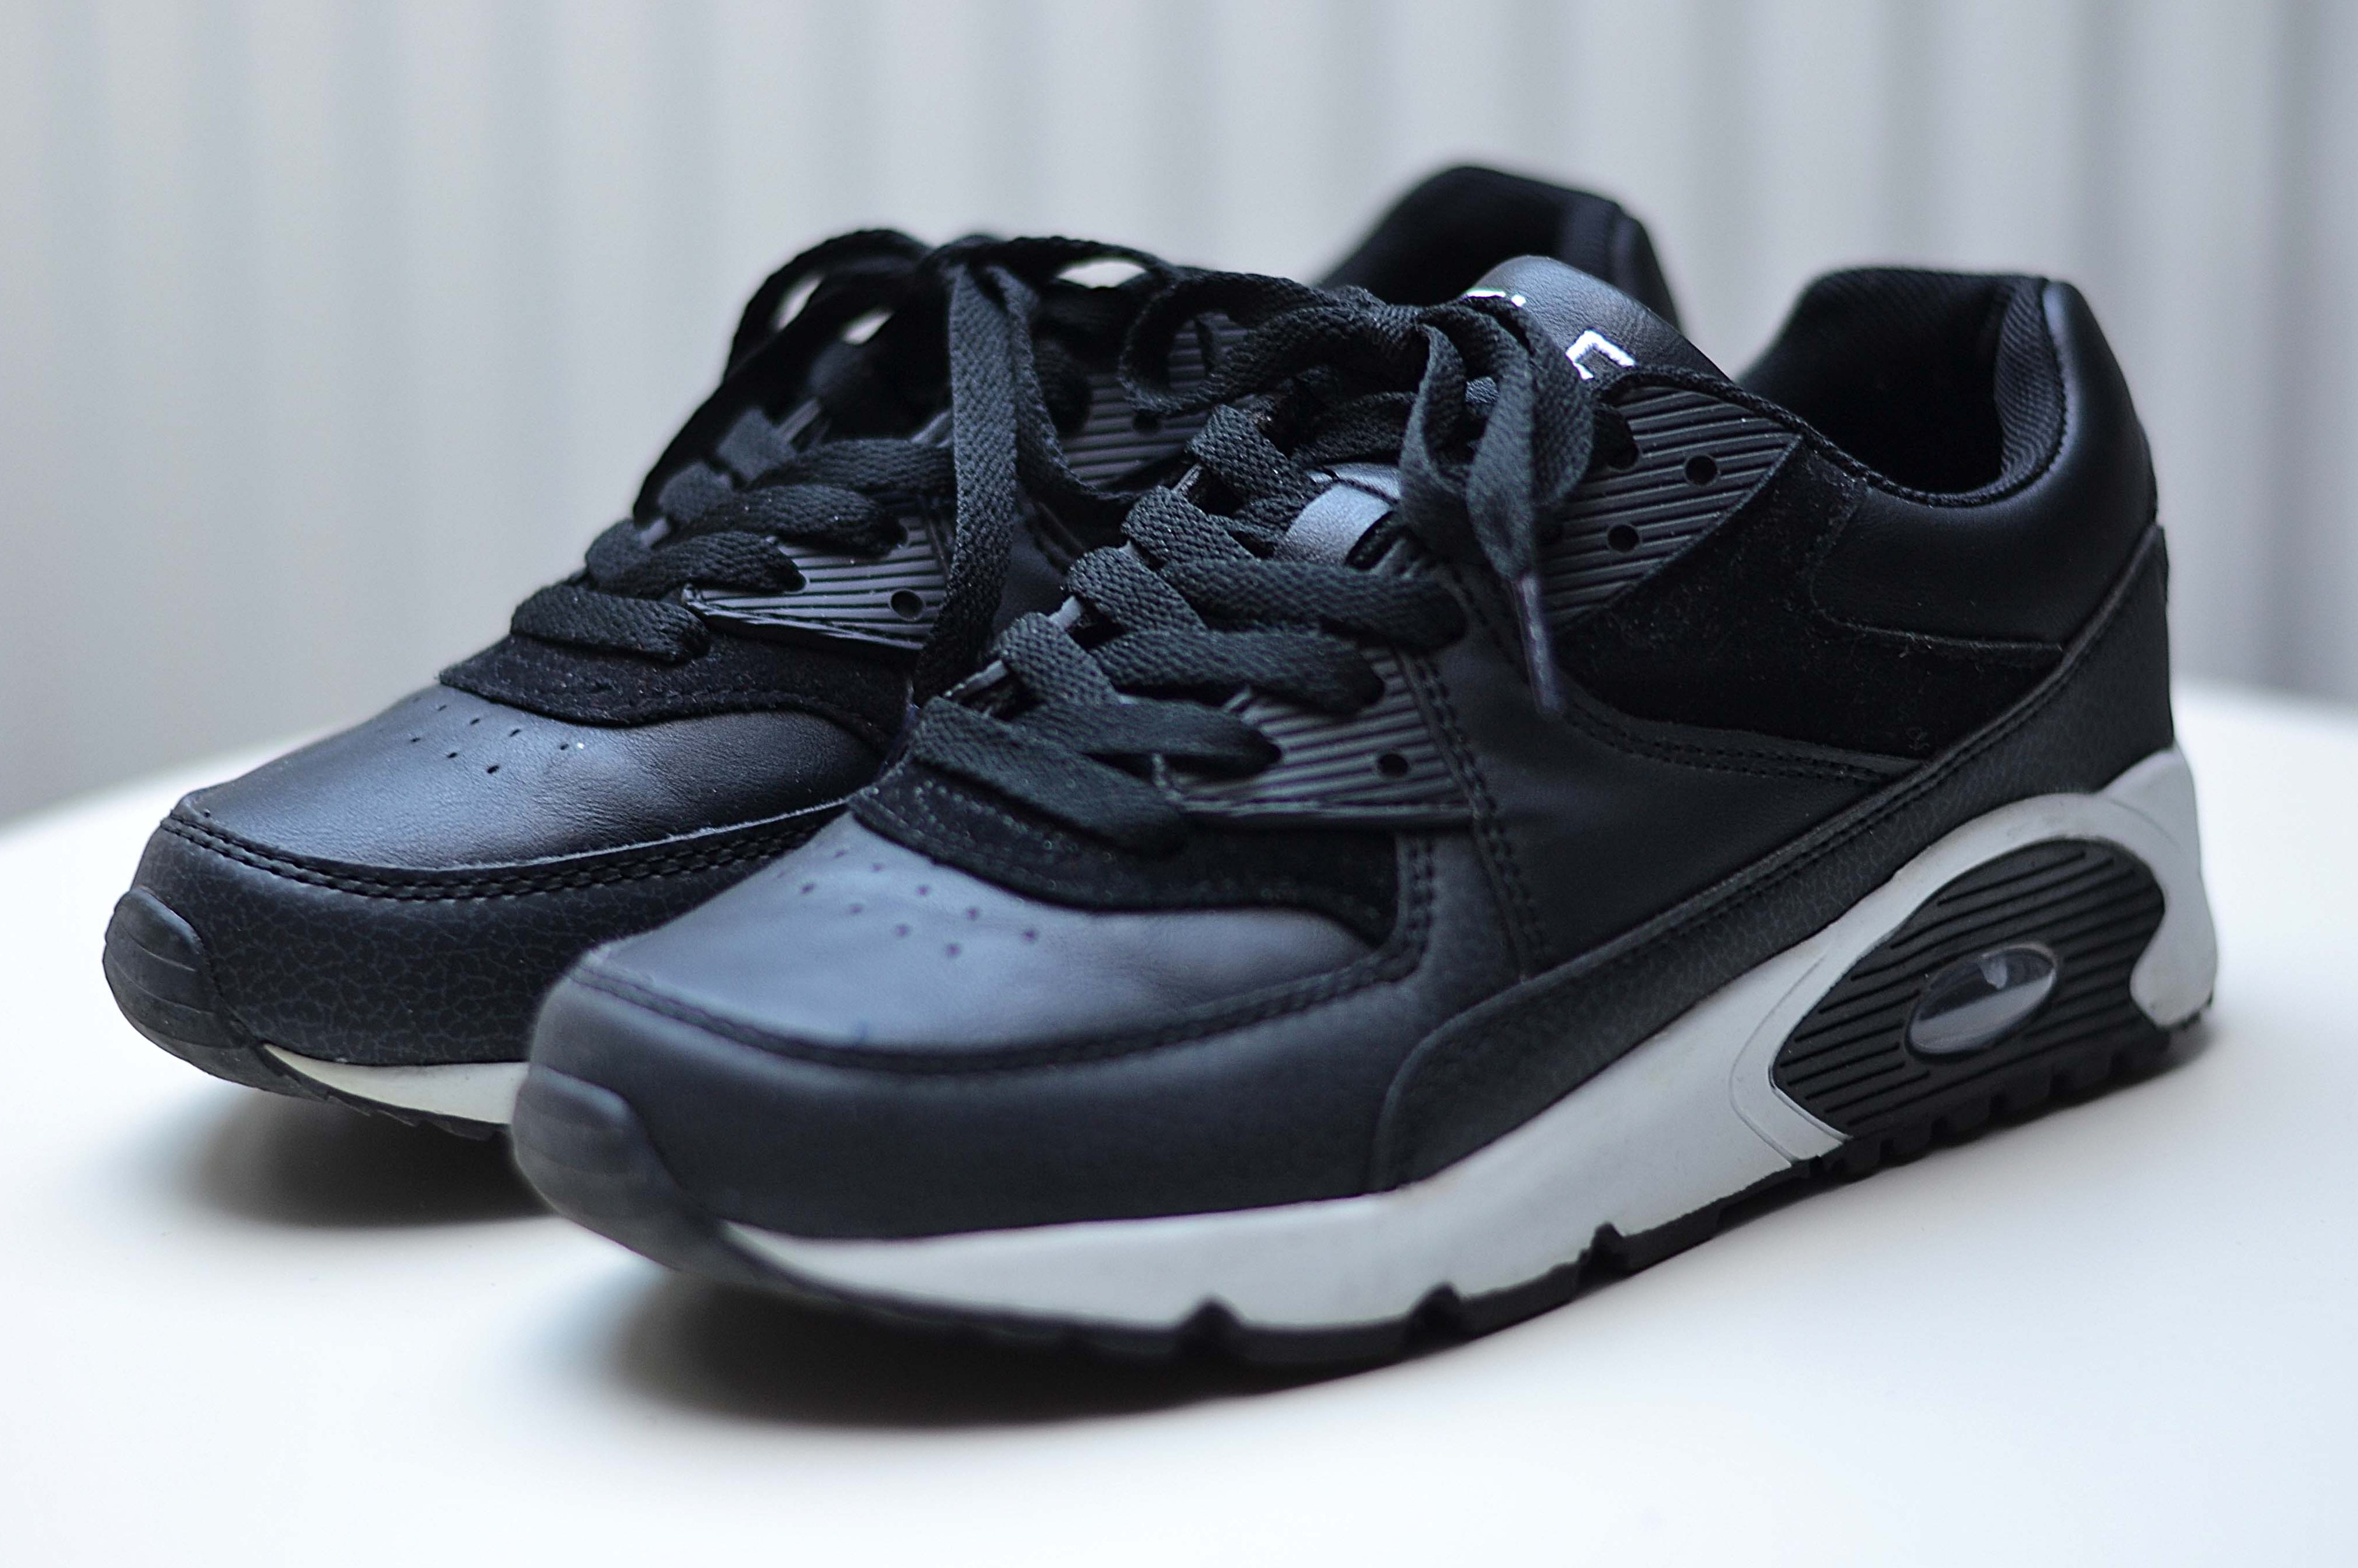 quality authentic sneakers for cheap Air Schuhe Deichmann Deichmann Schuhe Nike Nike Max Air WR6RYzUA